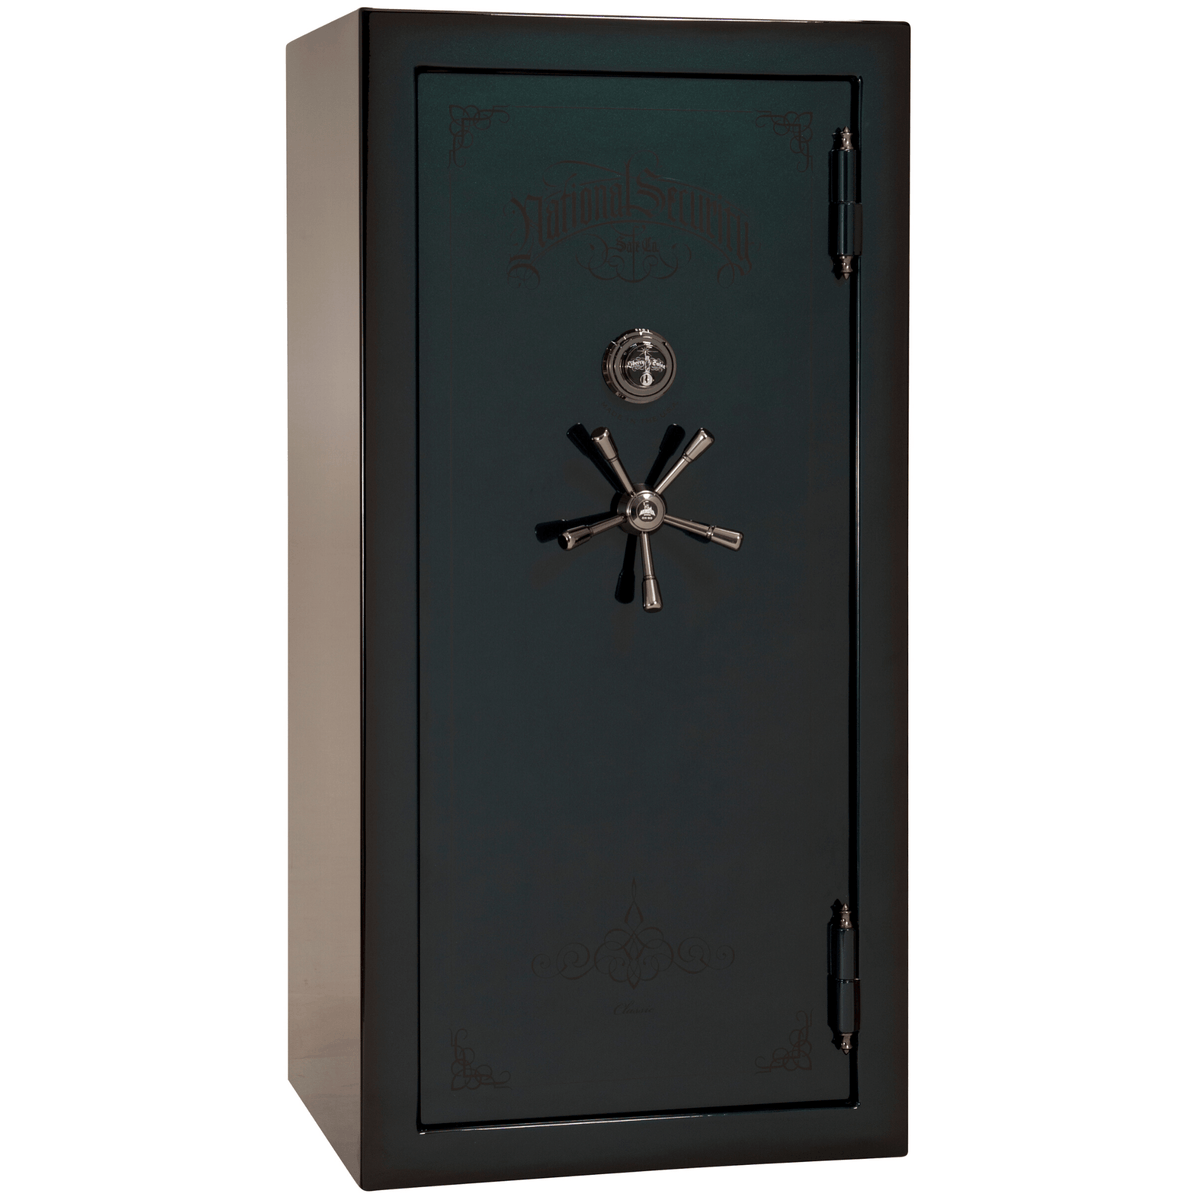 "Classic Plus | 25 | Level 7 Security | 110 Minute Fire Protection | Green 2-Tone | Black Mechanical Lock | 60.5""(H) x 30""(W) x 29""(D)"